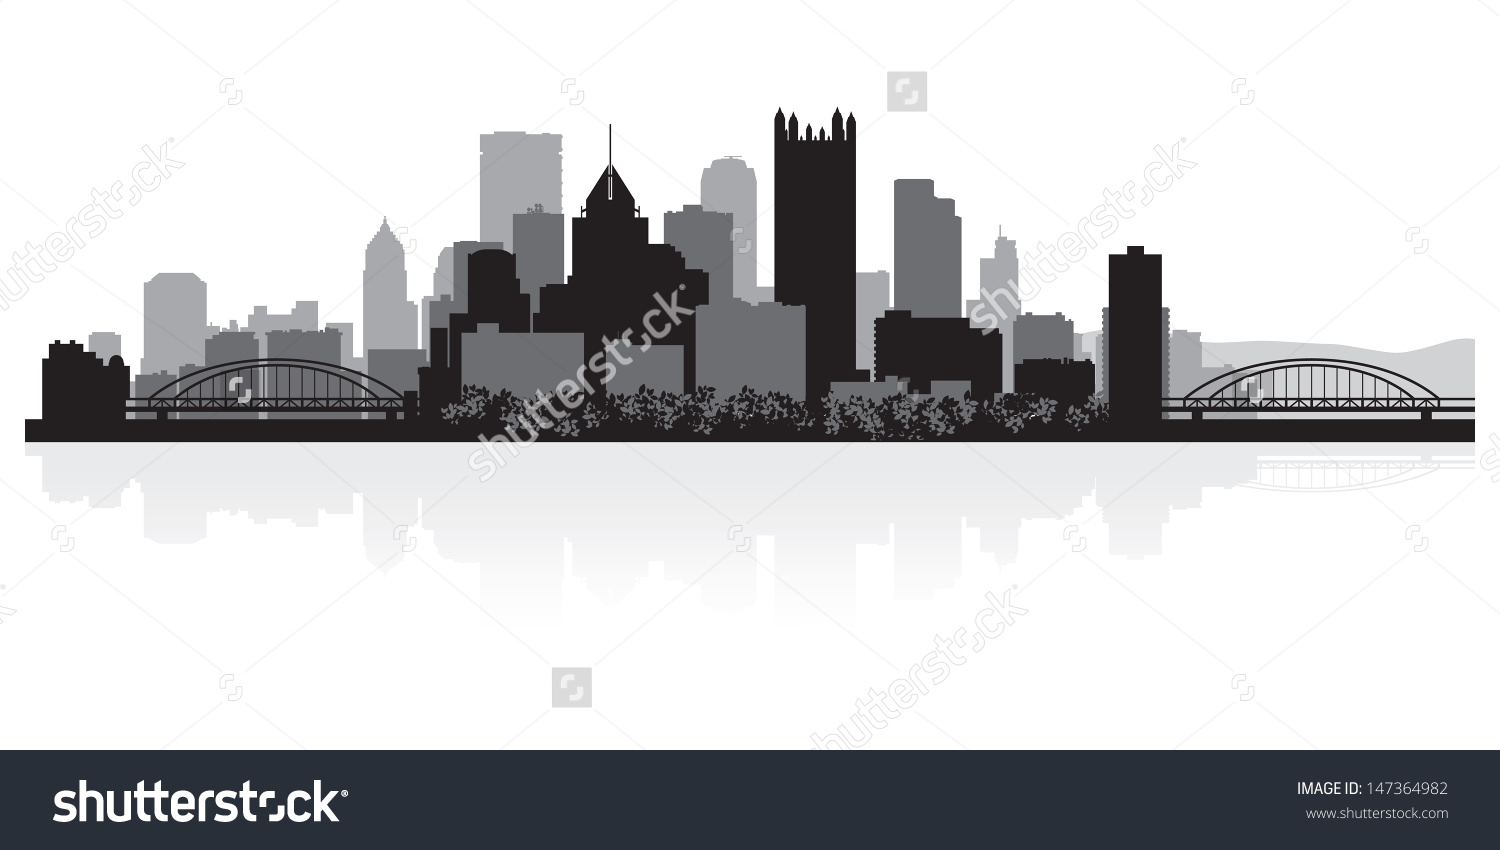 City of pittsburgh clipart.